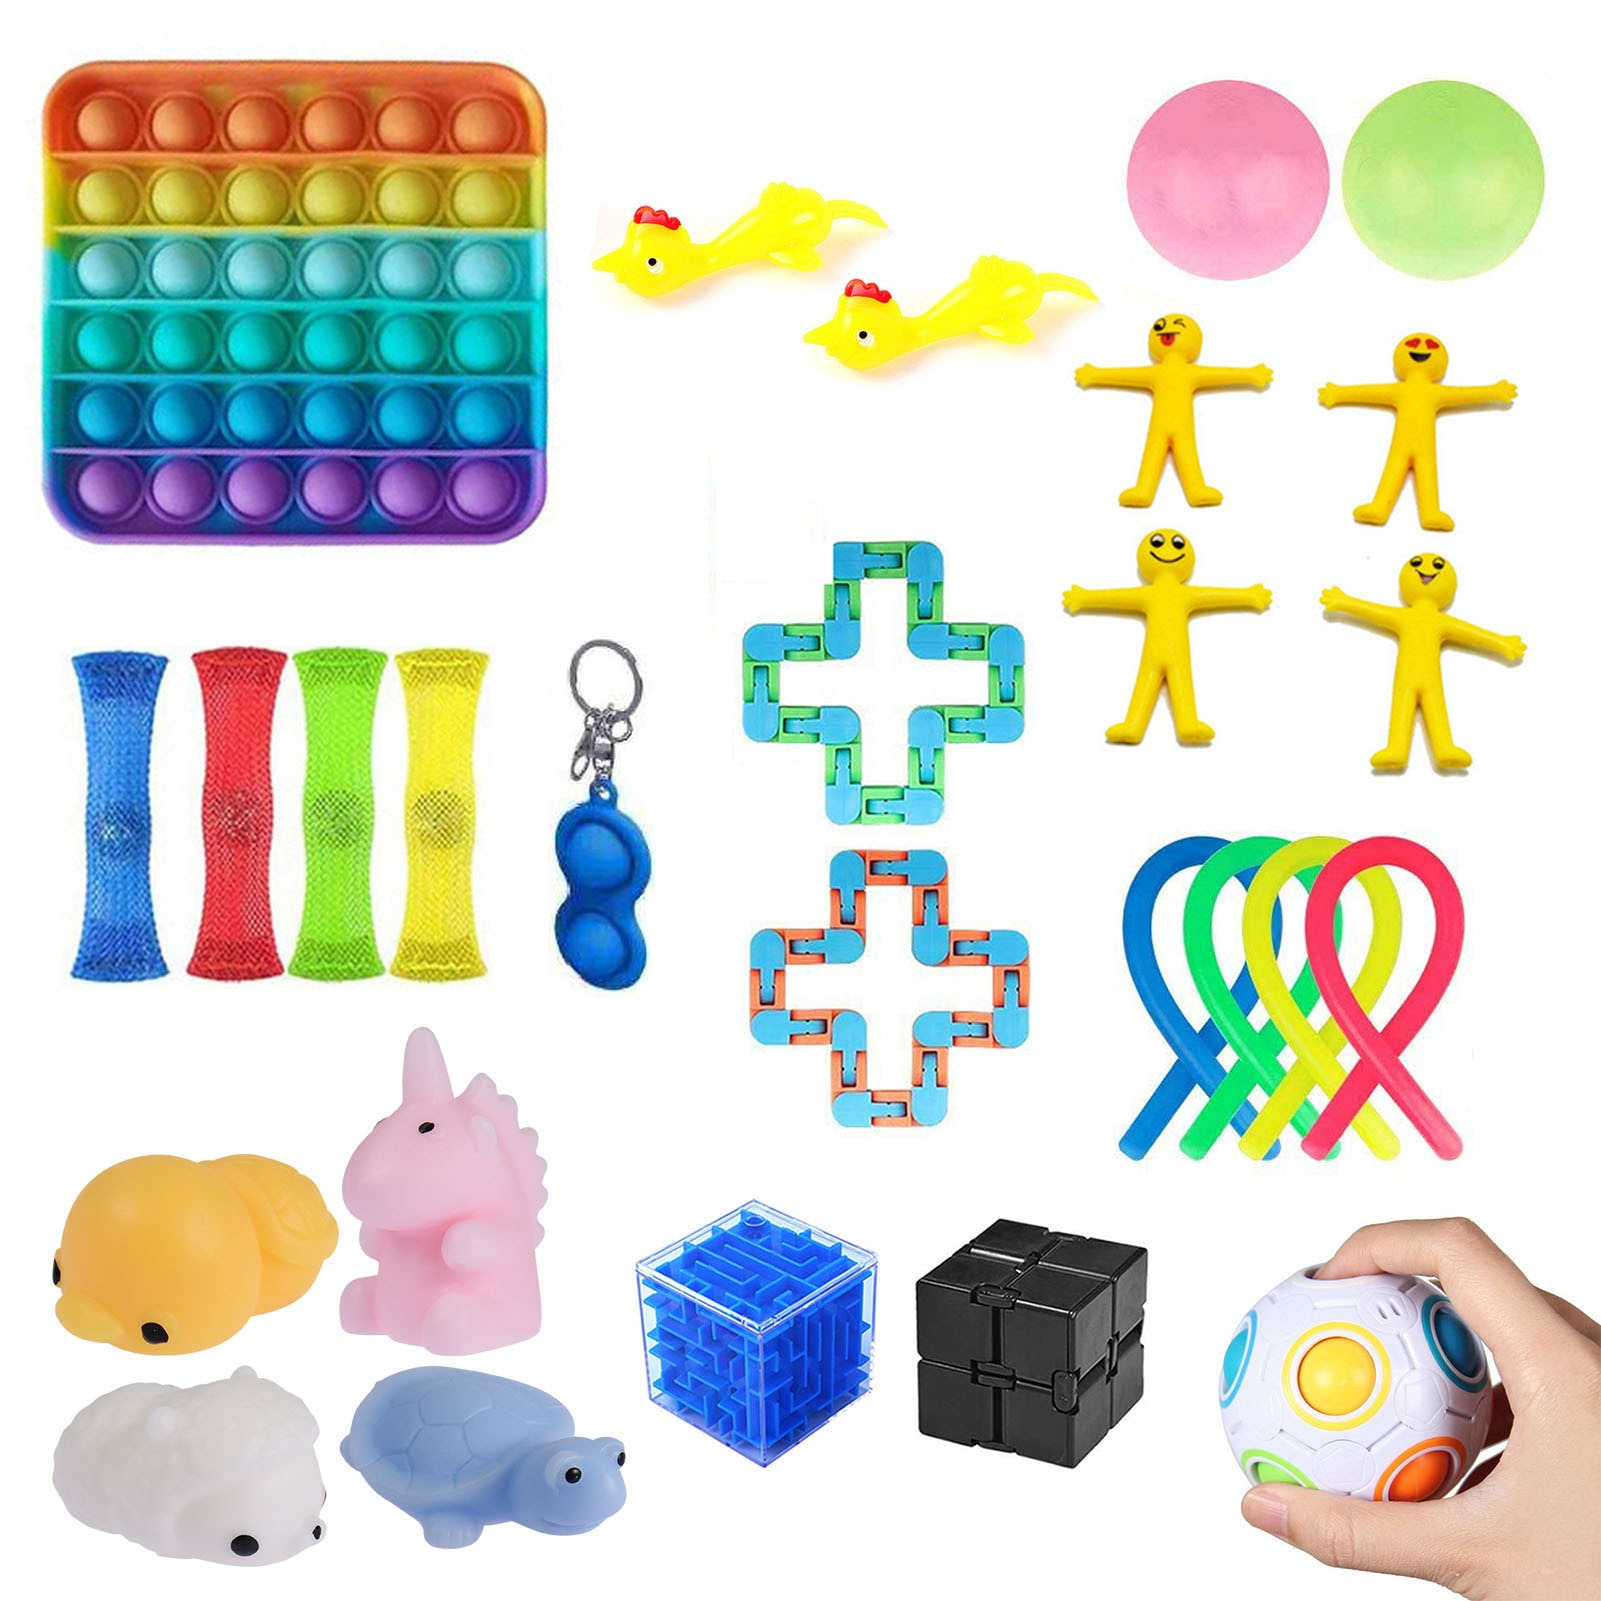 New Fidget Sensory Toy Set Stress Relief Toys Autism Anxiety Relief Stress Pop Bubble Funny Toy For Kids Adults